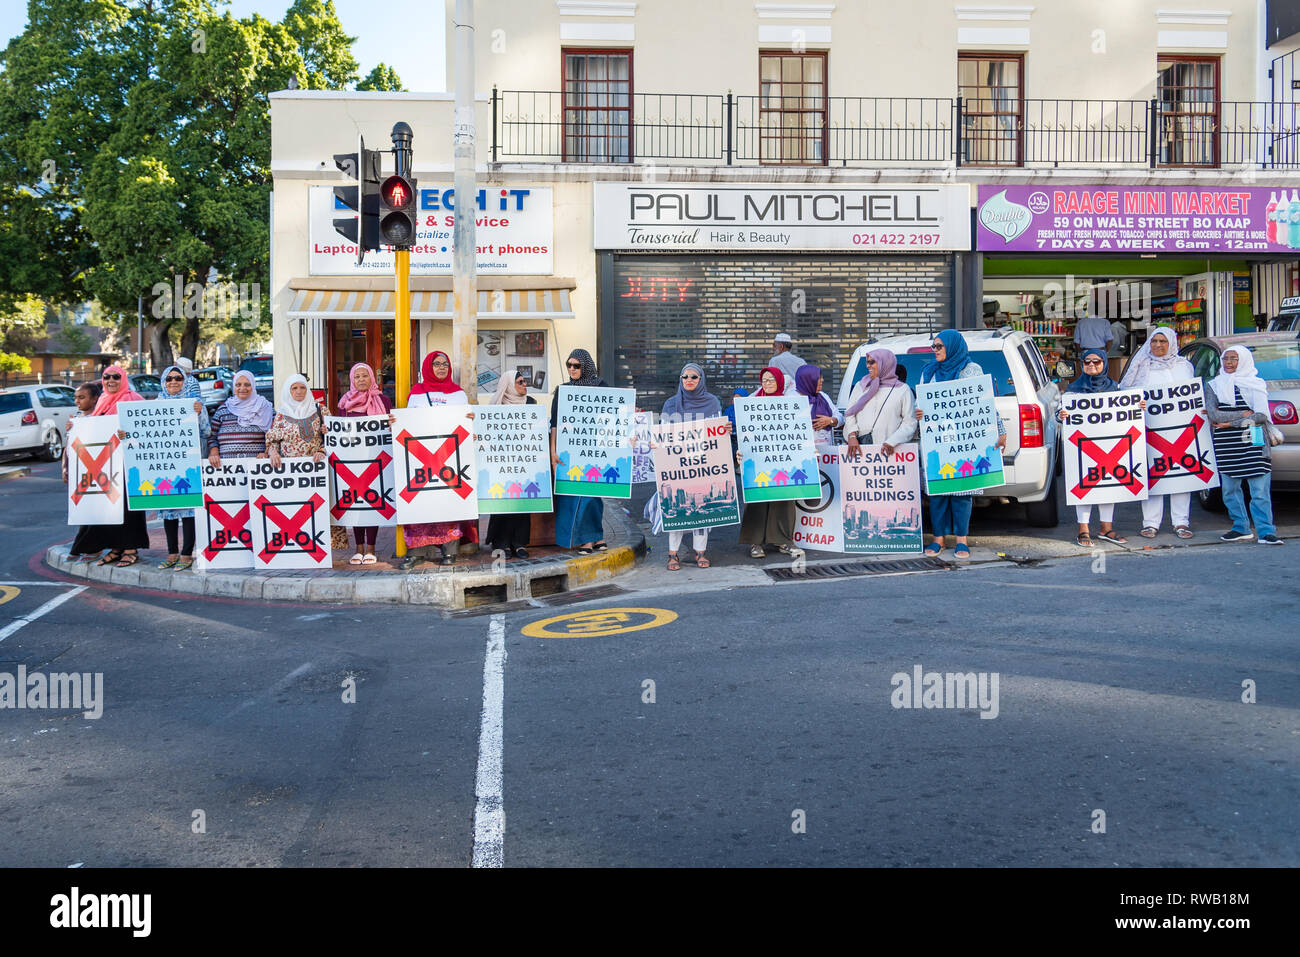 Locals protesting against the gentrification of the Bo-Kaap area in Cape Town, South Africa - Stock Image